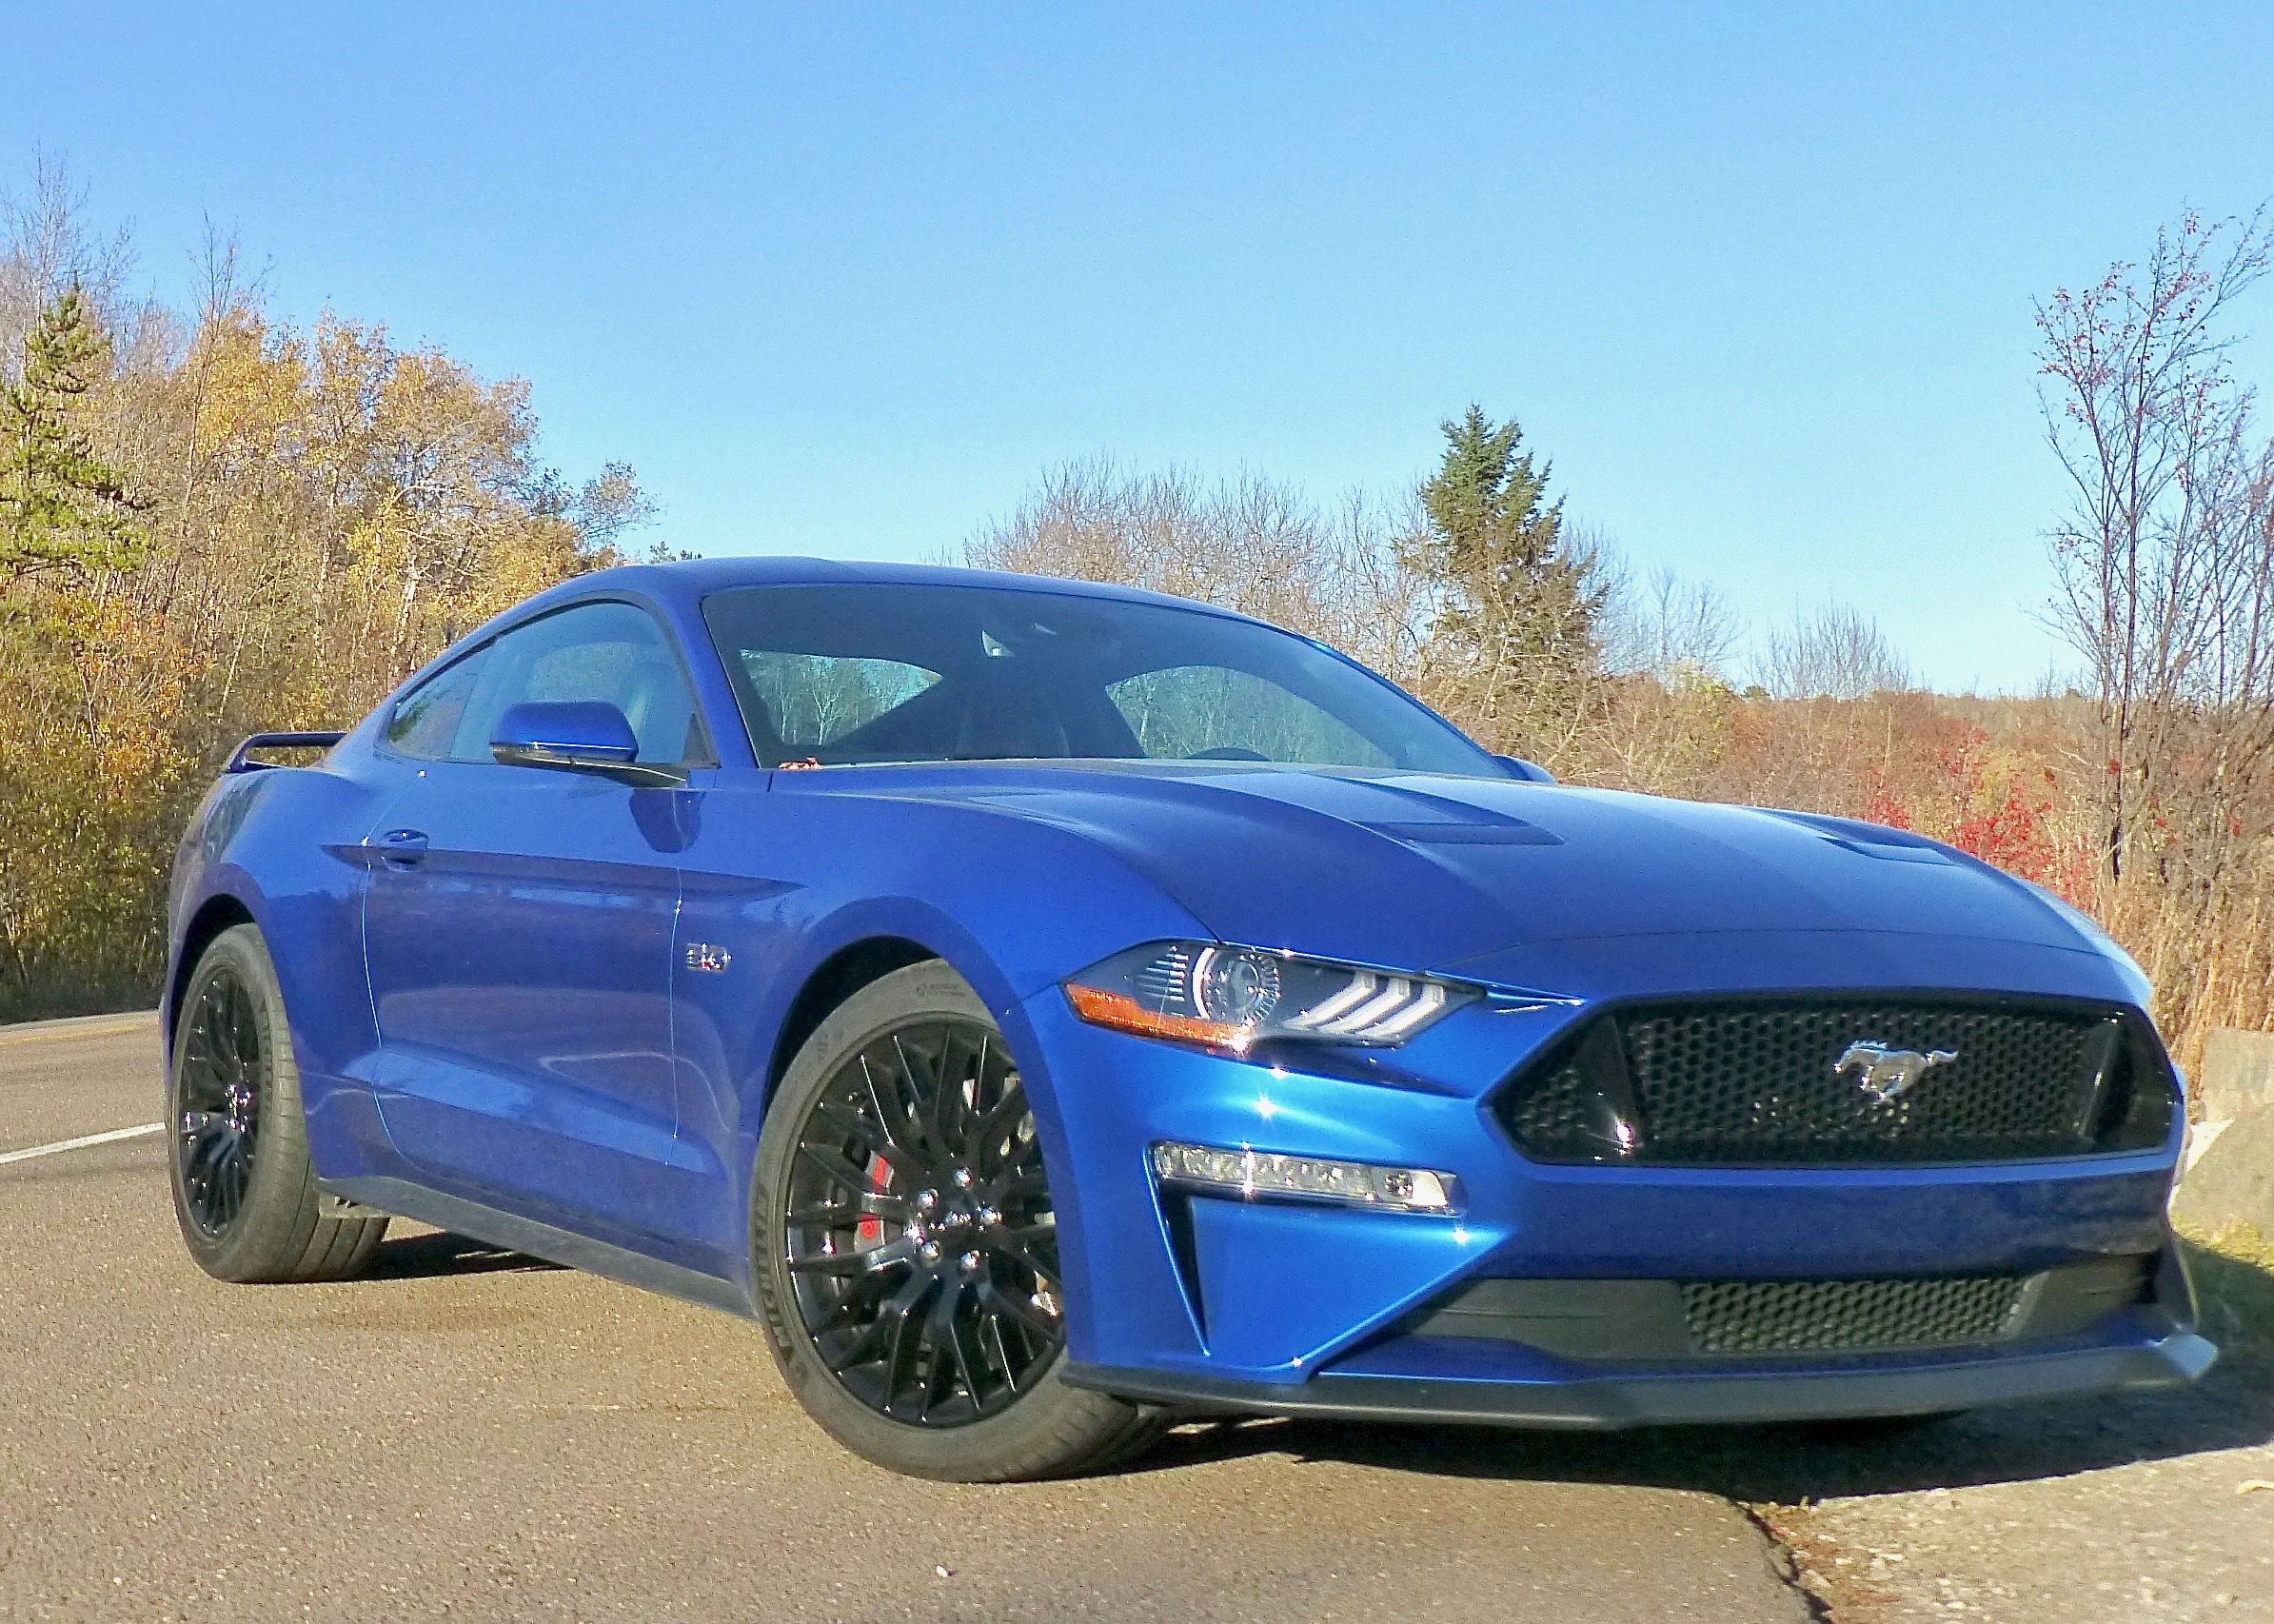 There are costlier Mustangs, but the GT Coupe Premium with 460 horsepower and precise handling is more than enough.